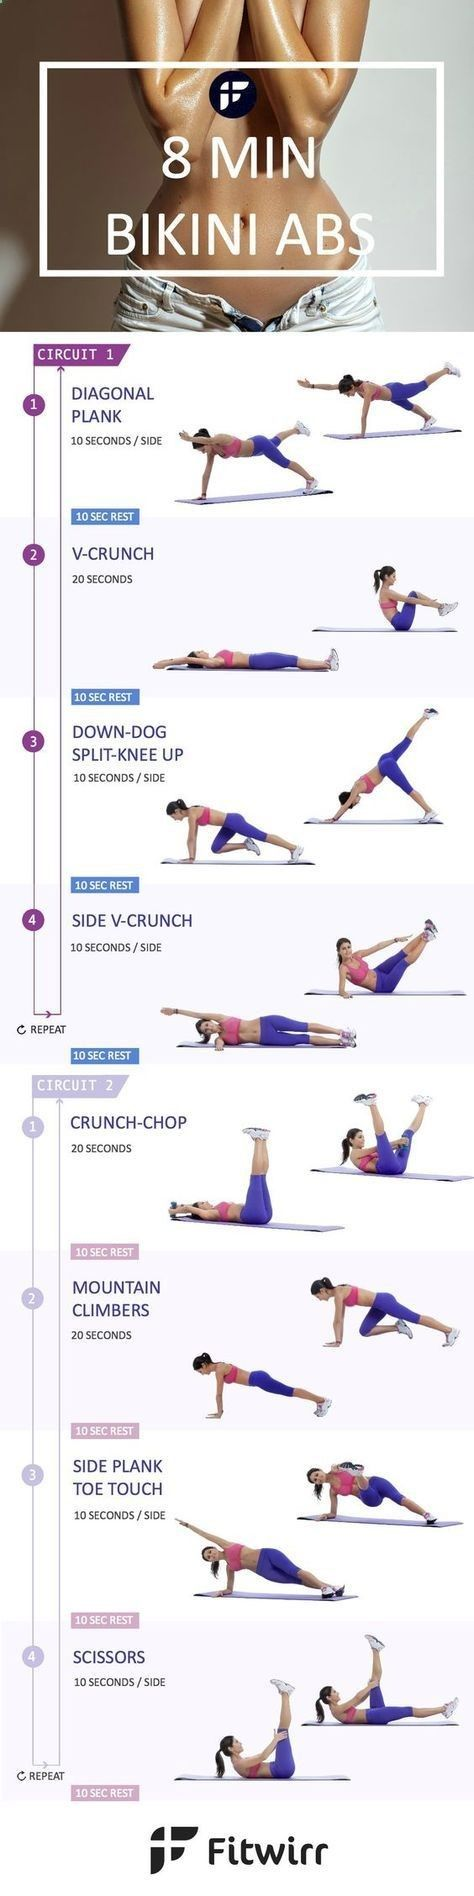 Yoga Fitness Flat Belly Comment faire pour perdre la graisse du ventre rapide avec 8 Minute Bikini Abdo - There are many alternatives to get a flat stomach and among them are various yoga poses.